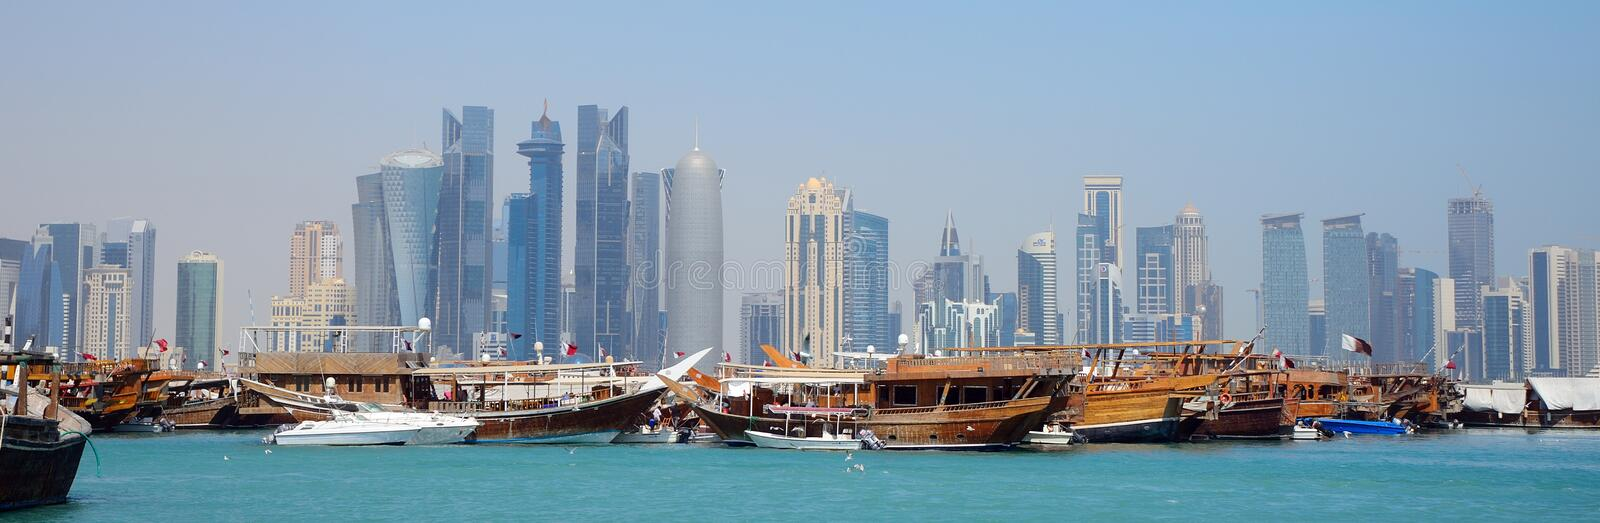 Dhows, Doha, Qatar. Dhows in the bay of Doha, Qatar royalty free stock images